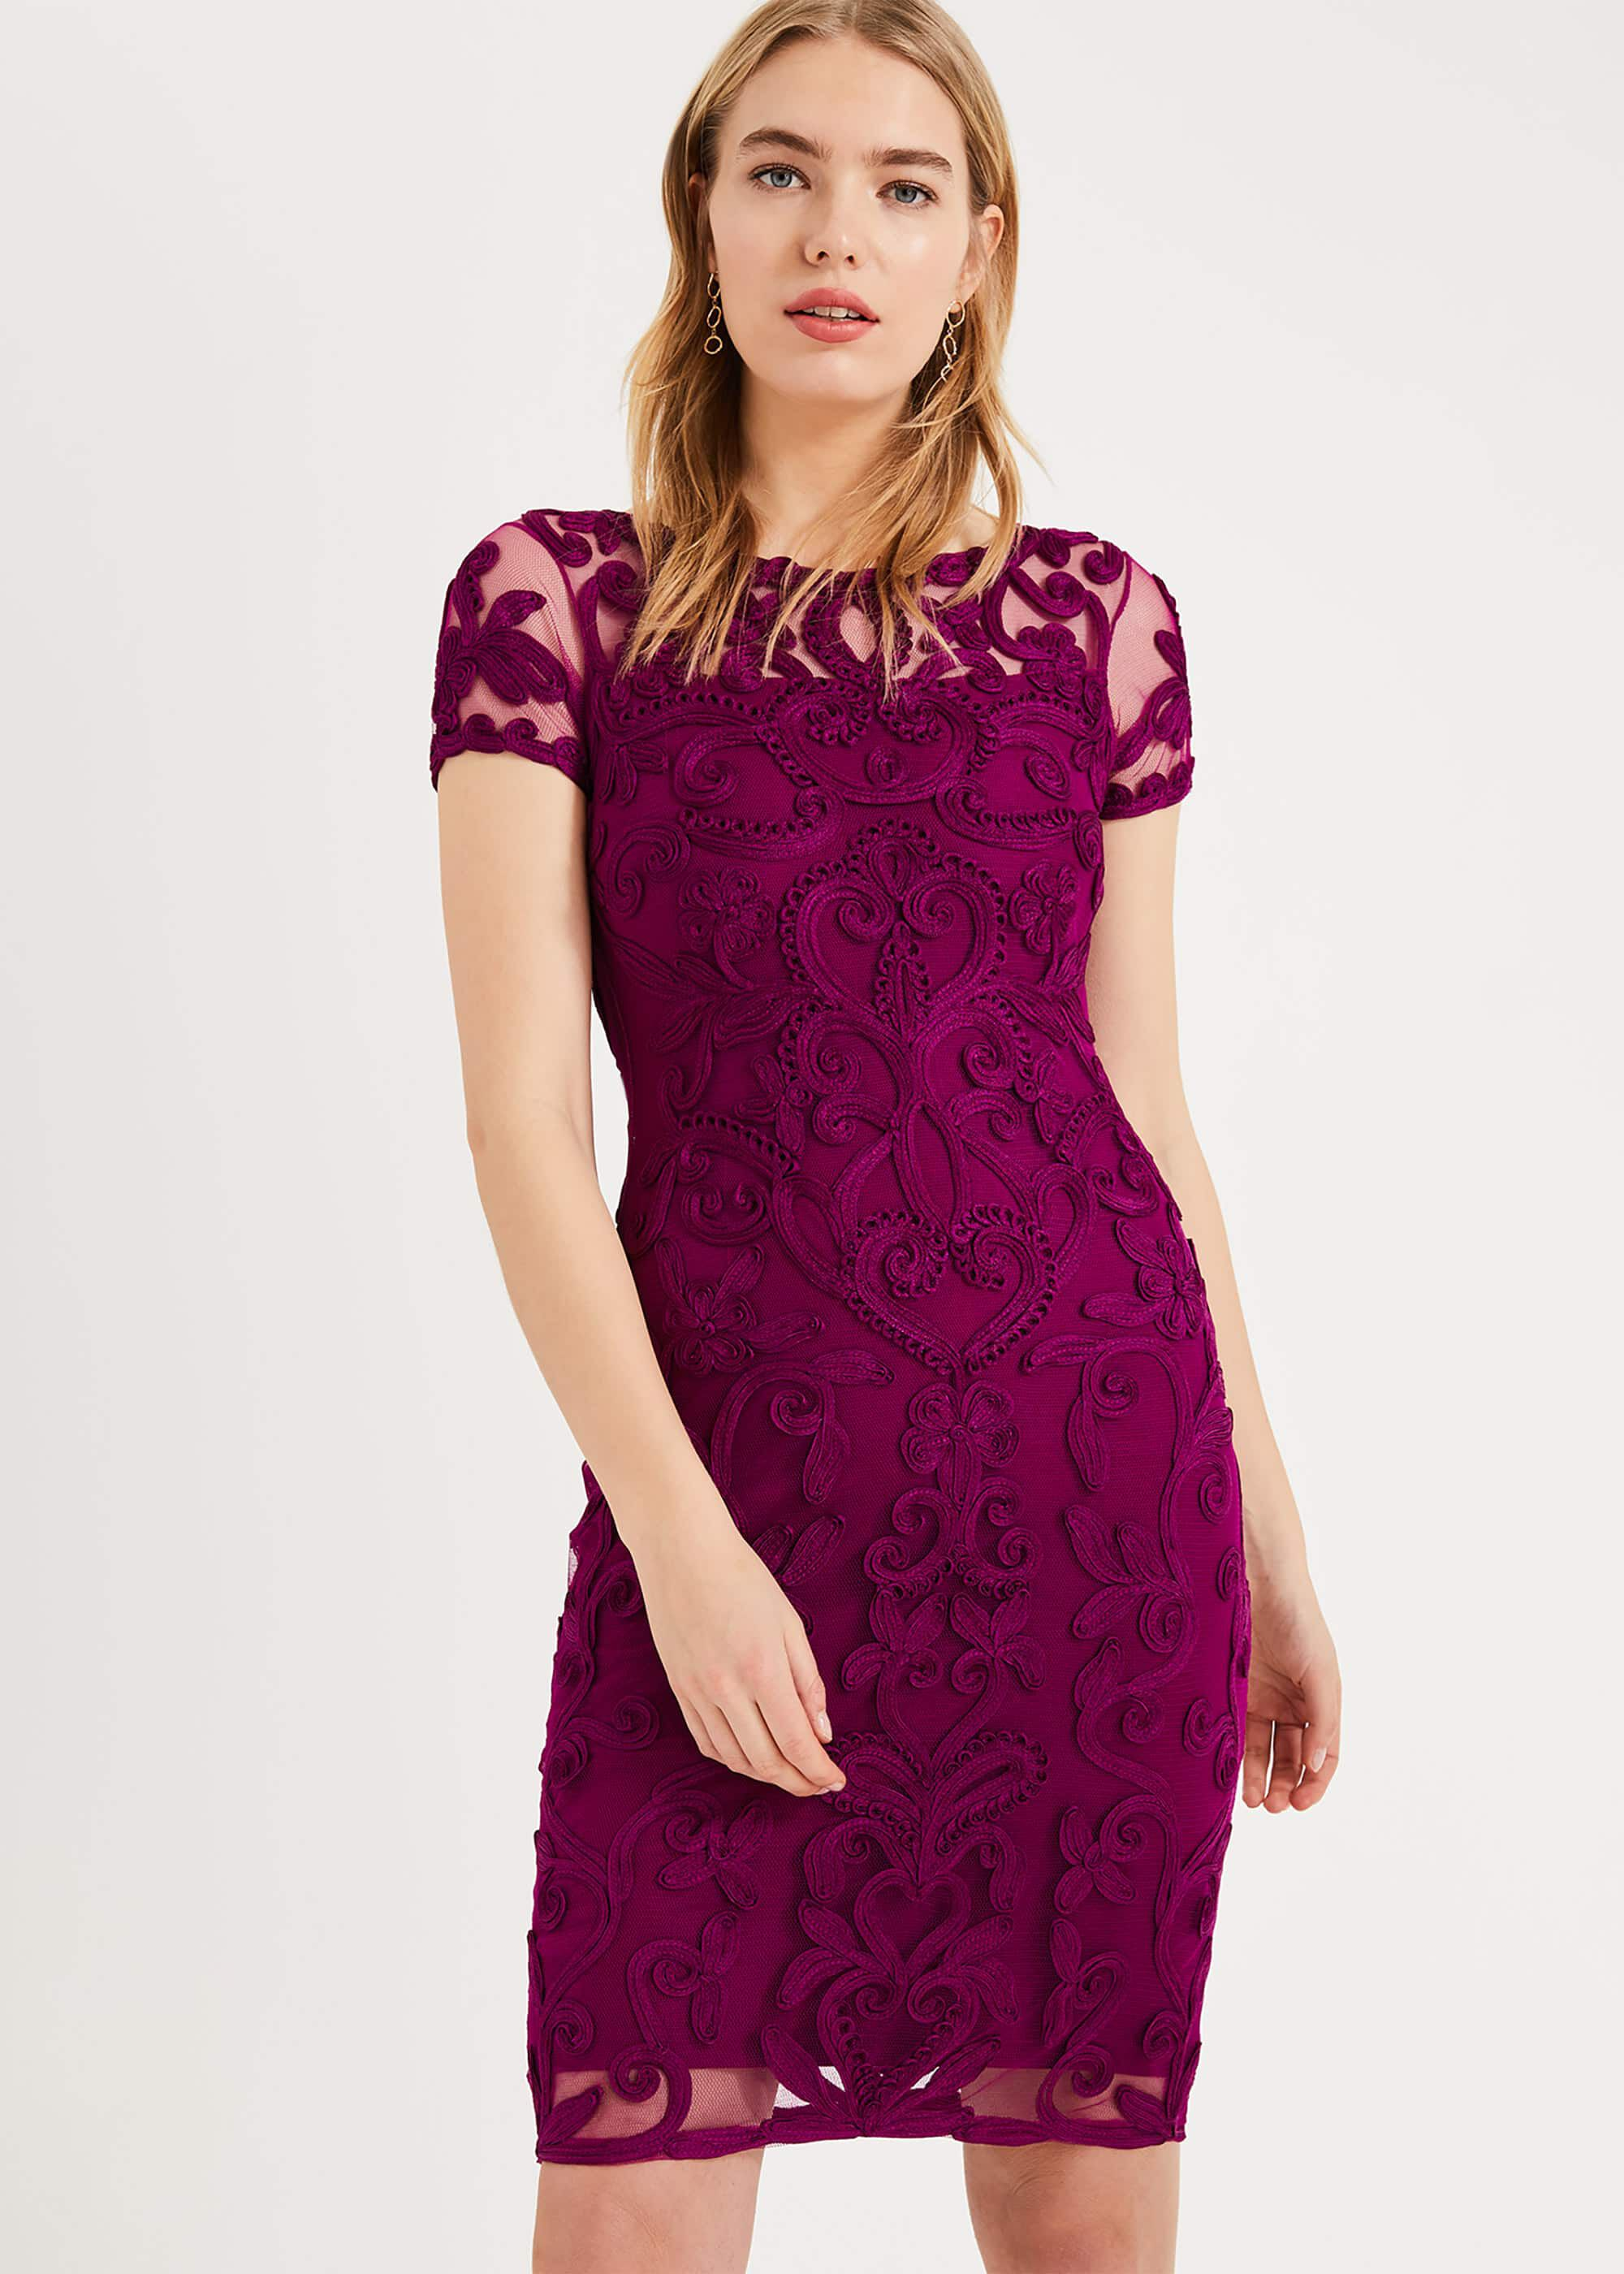 Phase Eight Sheena Tapework Lace Dress, Purple, Fitted